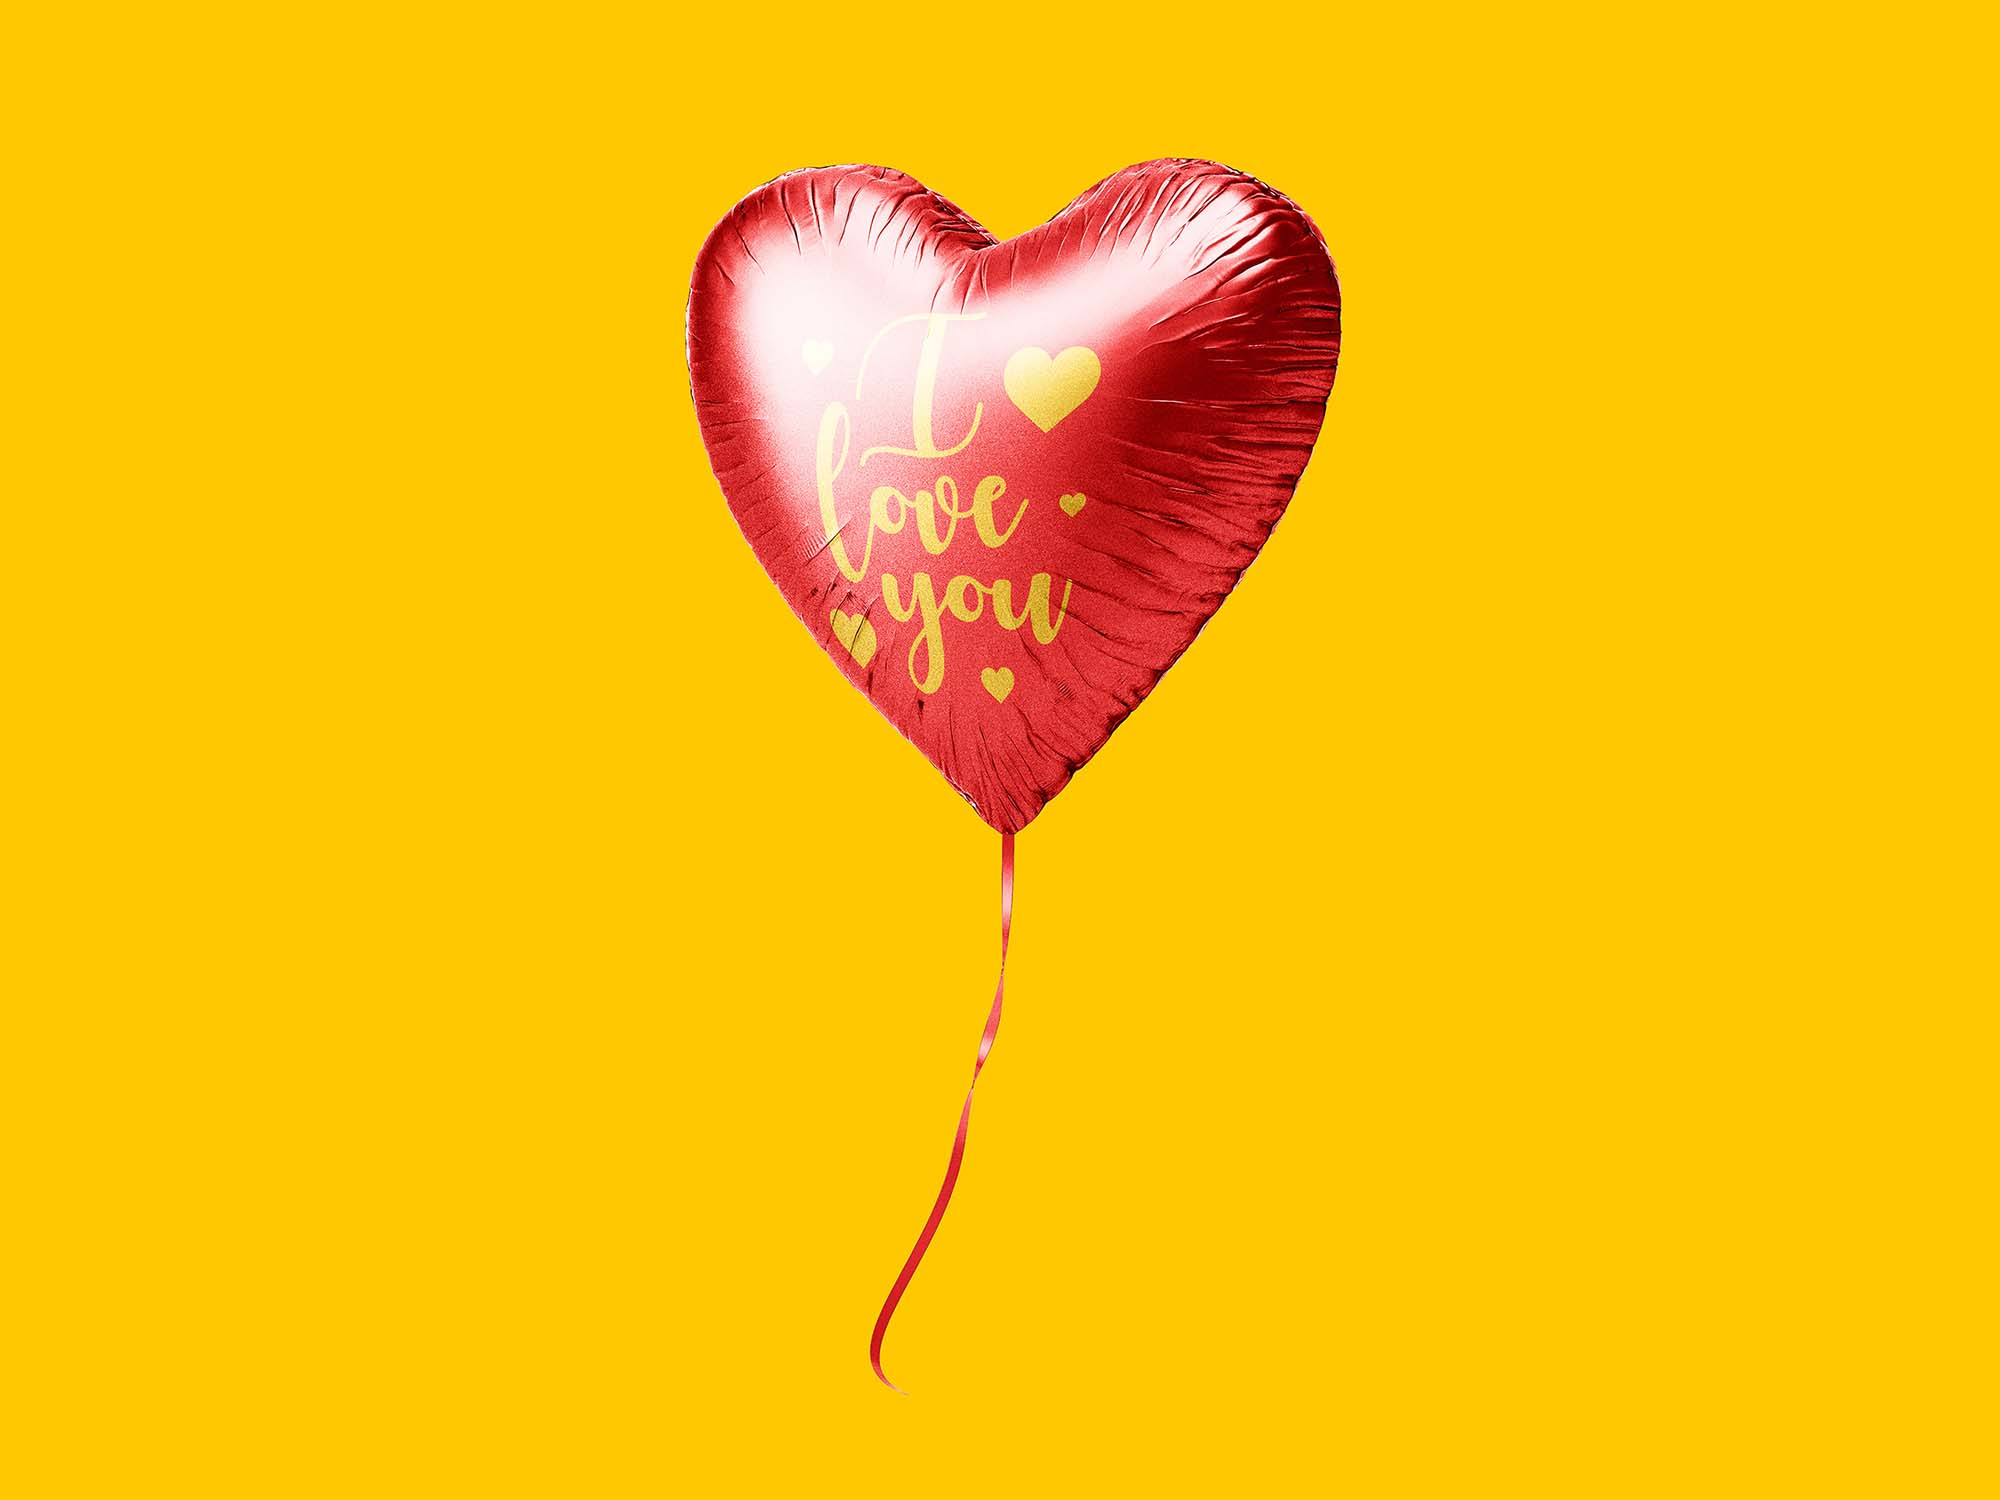 Heart Balloon Mockup 2